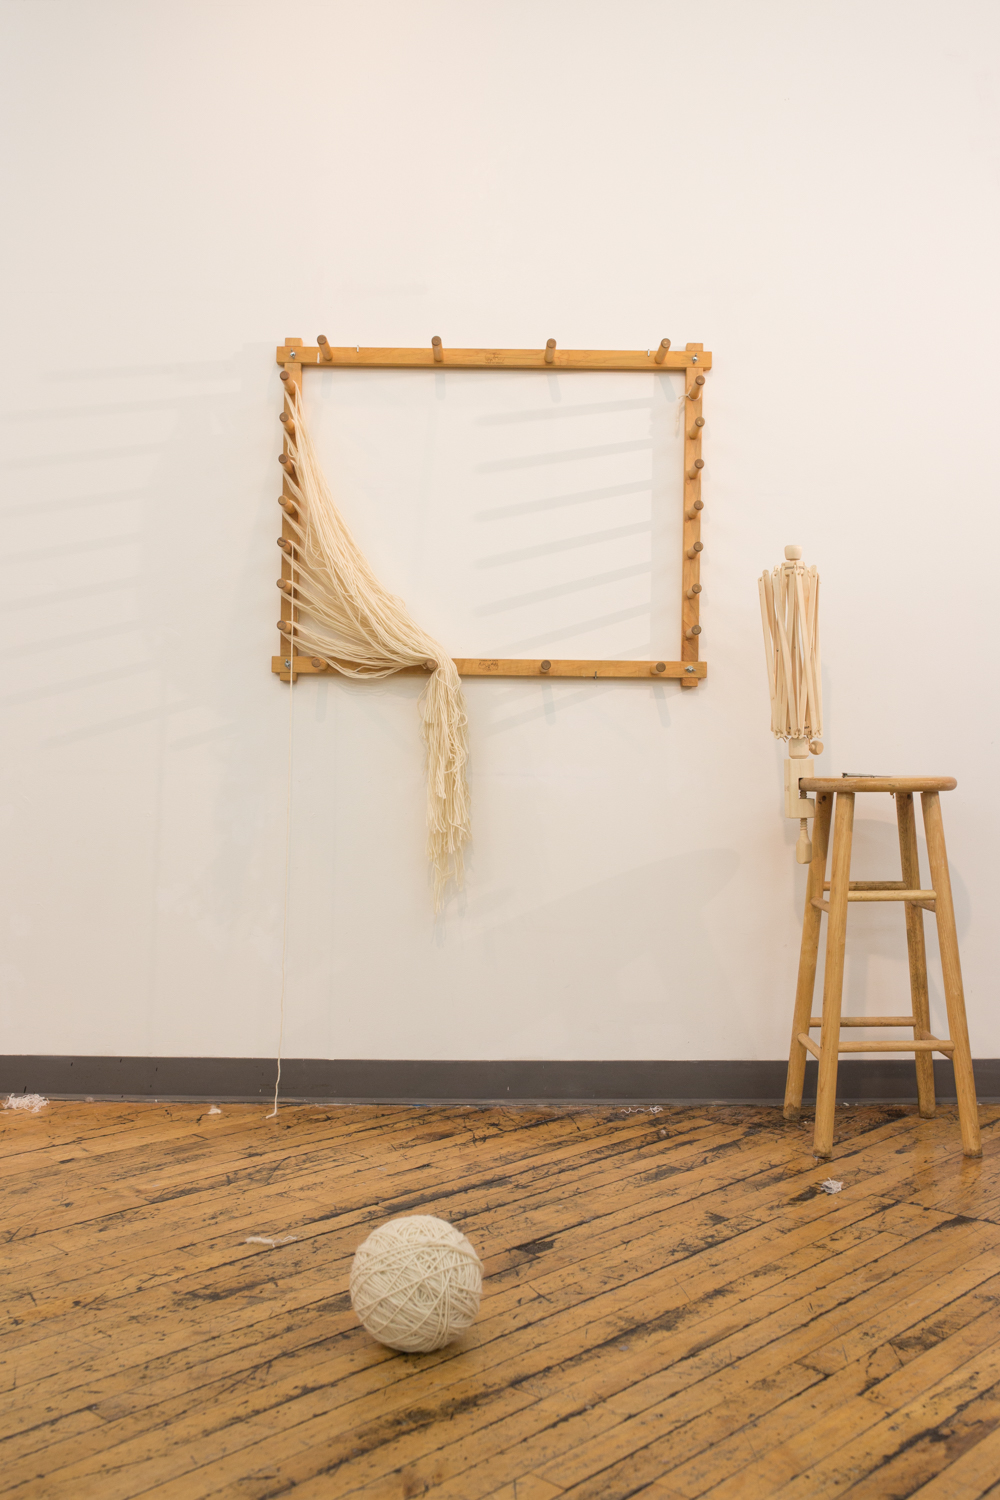 The performance ends with all the yarn being untangled. The last shot is a still life of the warping board, the stool and swift, and the ball of untangled yarn.